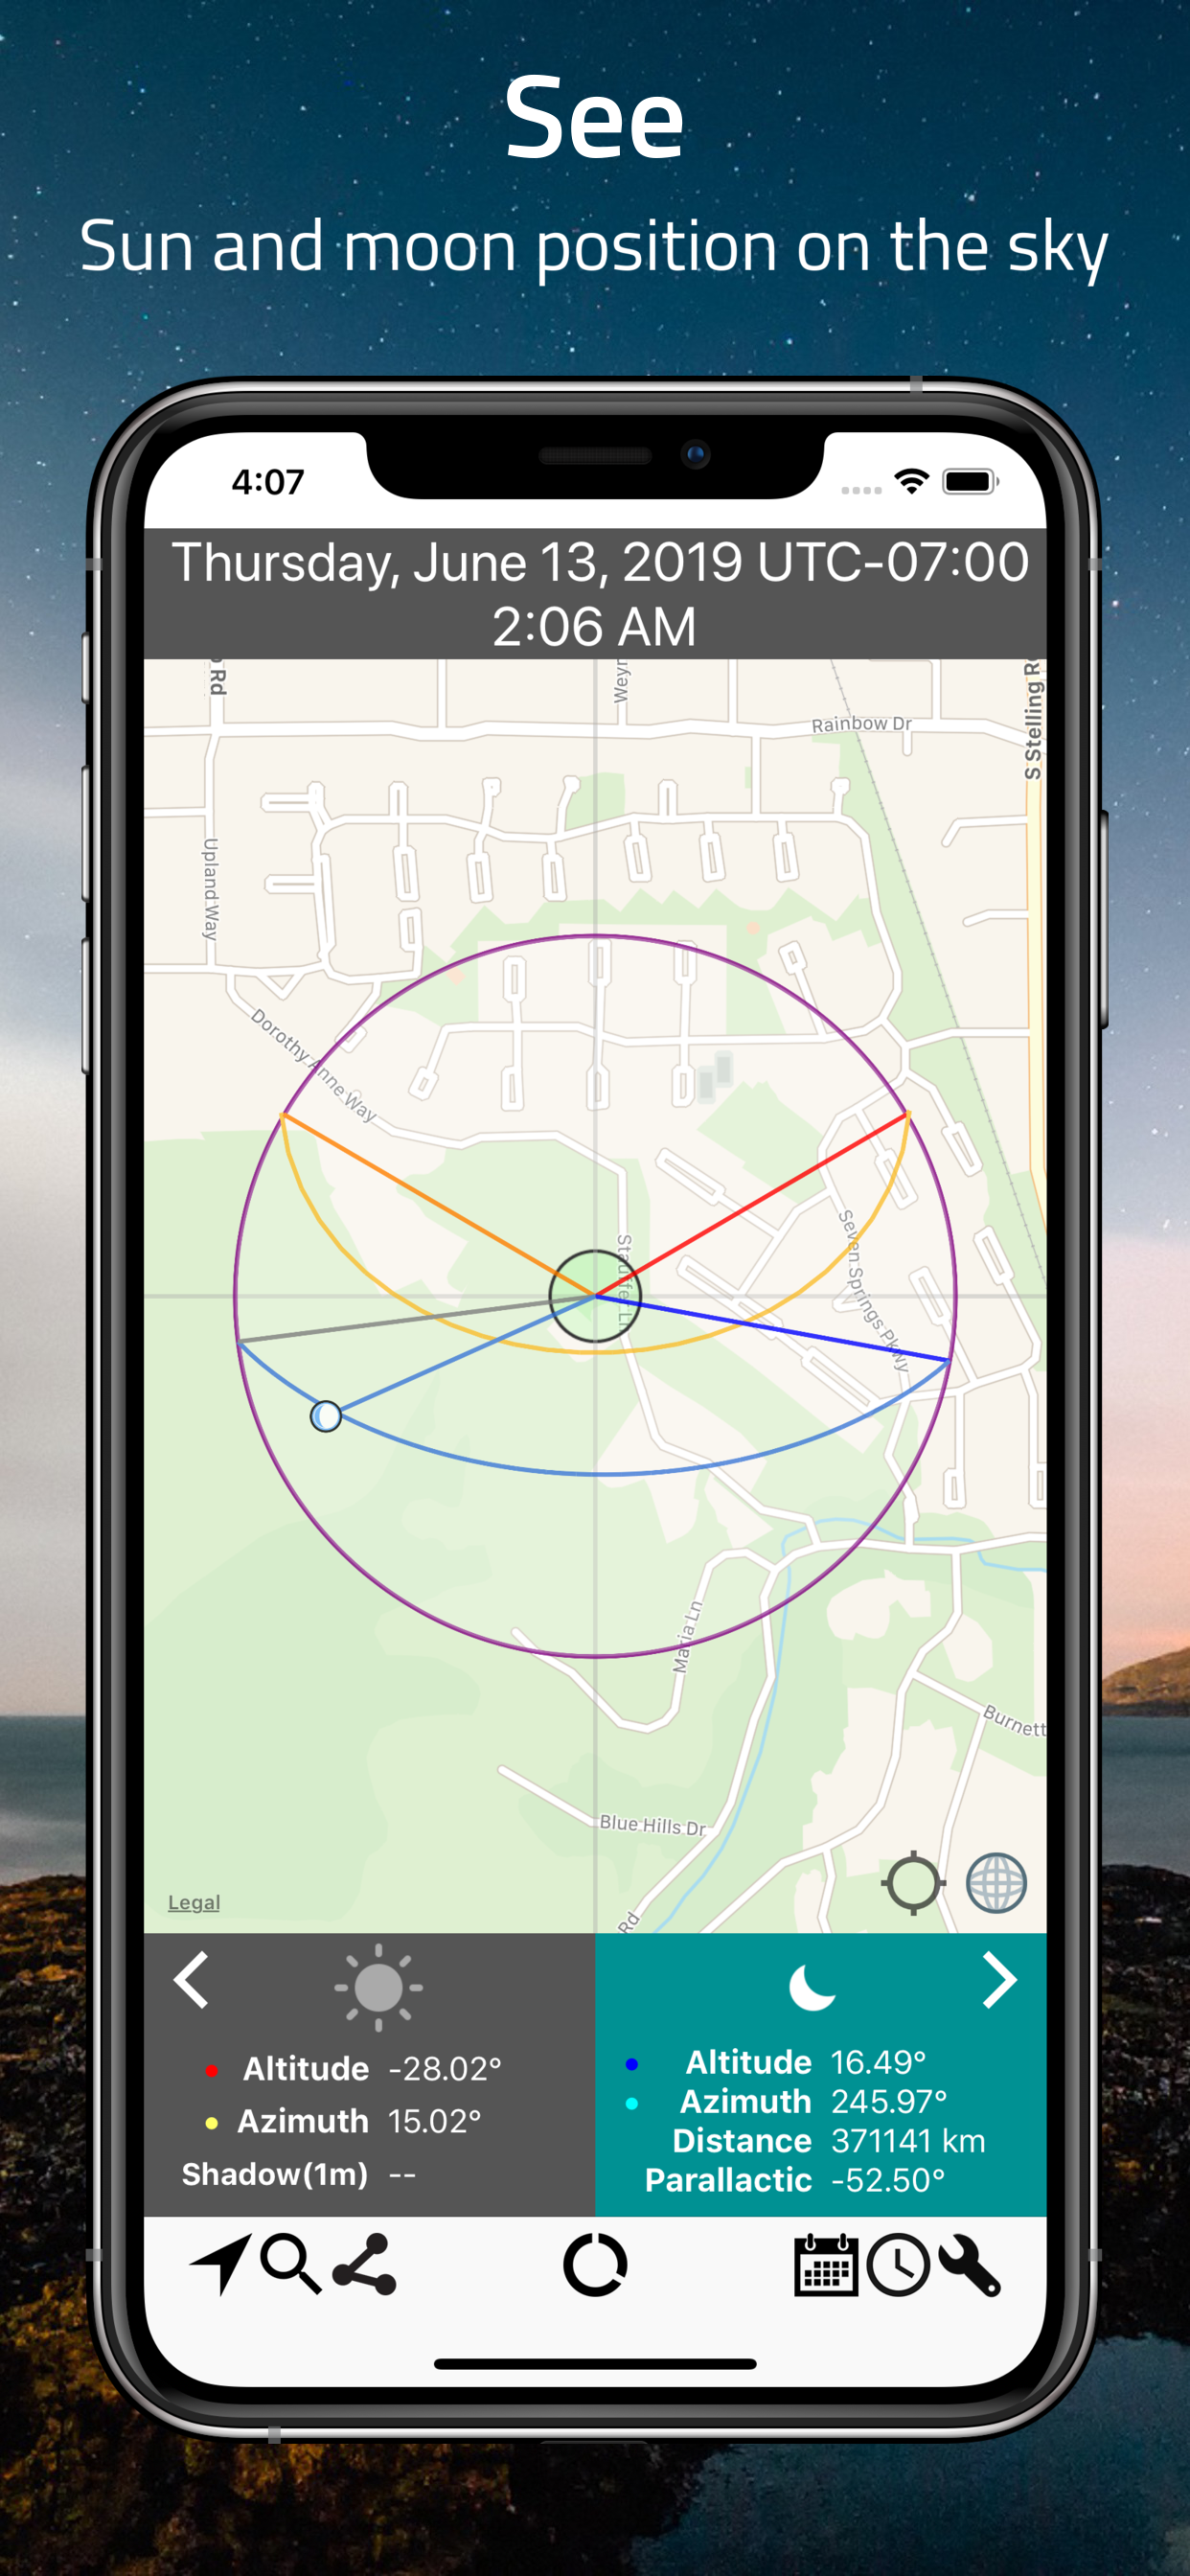 iPhone Xs Max-03map1 - Position_framed.png